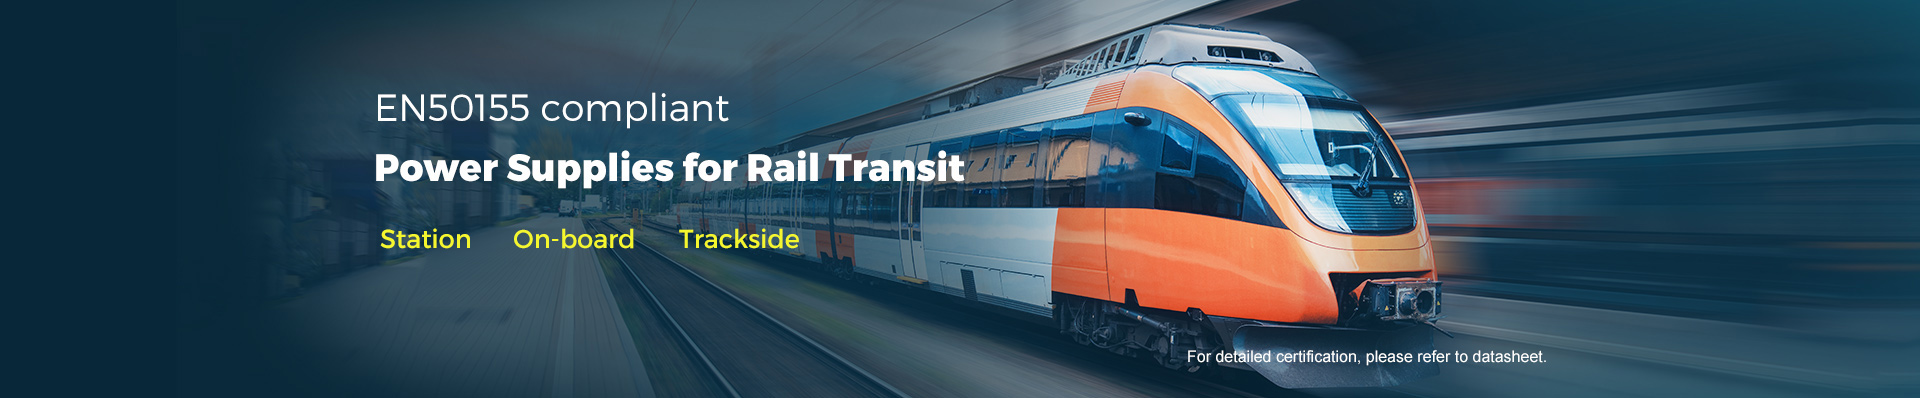 EN50155 compliant power supplies for rail transit